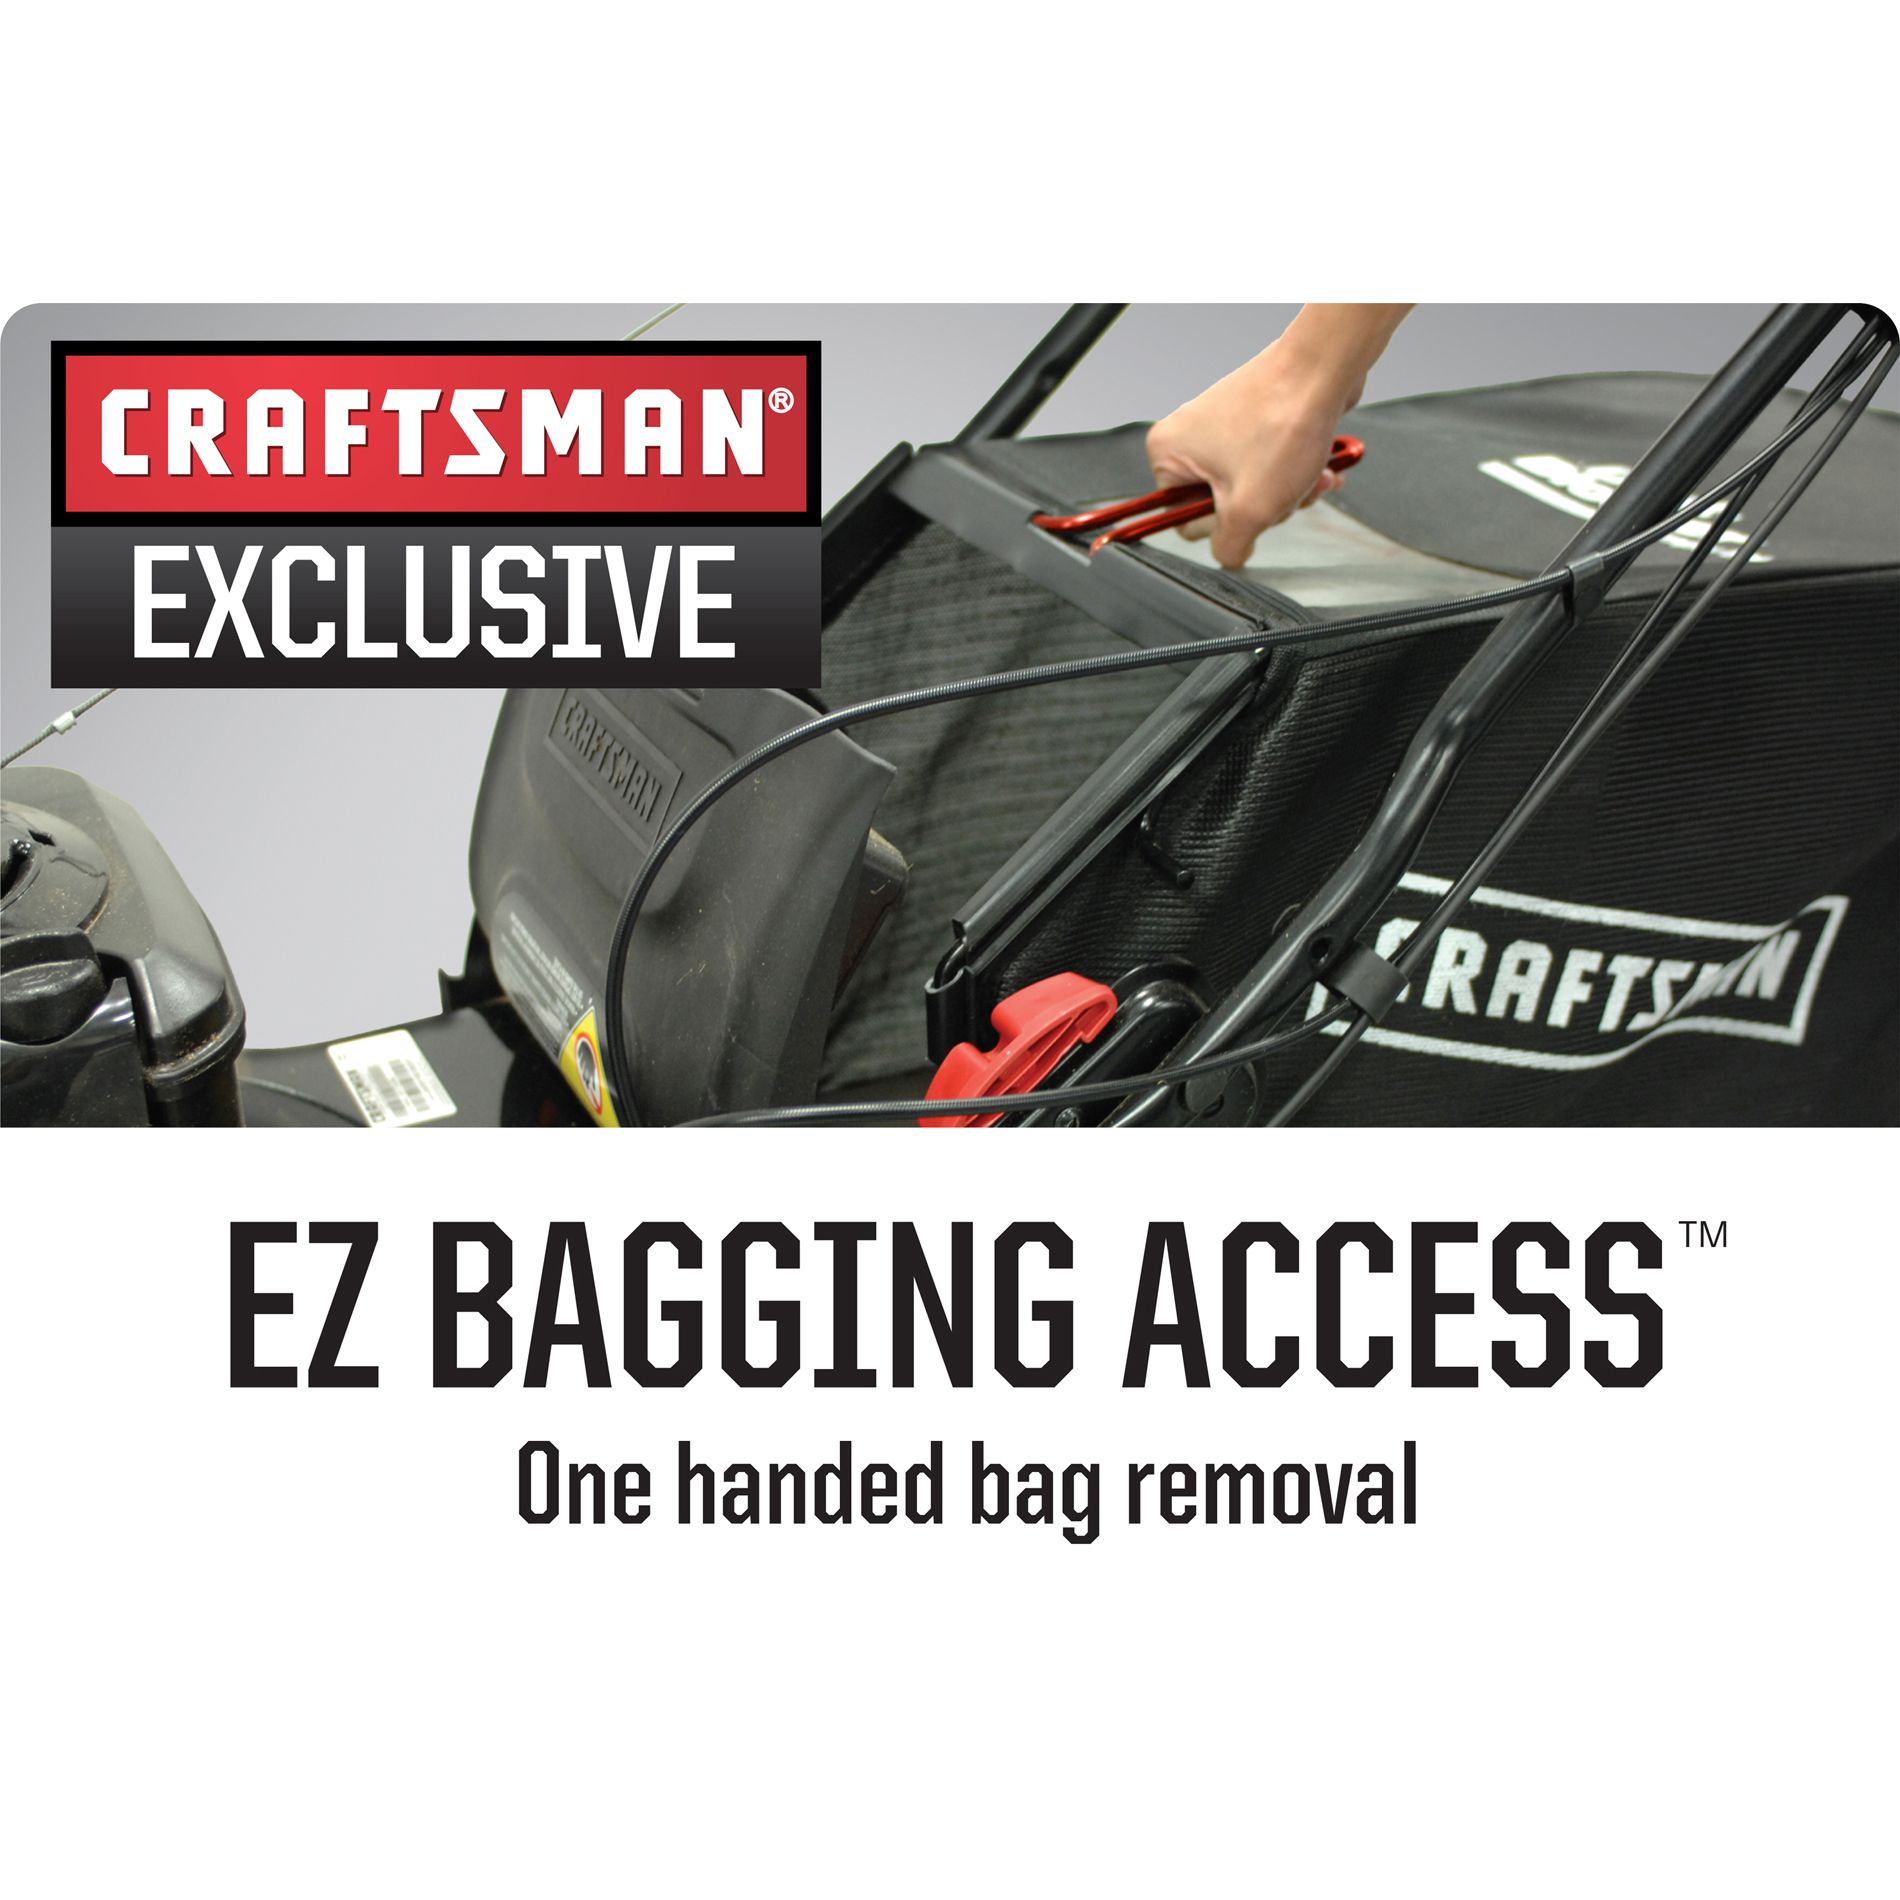 "Craftsman 190cc* Briggs & Stratton Gold Engine  22"" Front Drive Self-Propelled EZ Lawn Mower"